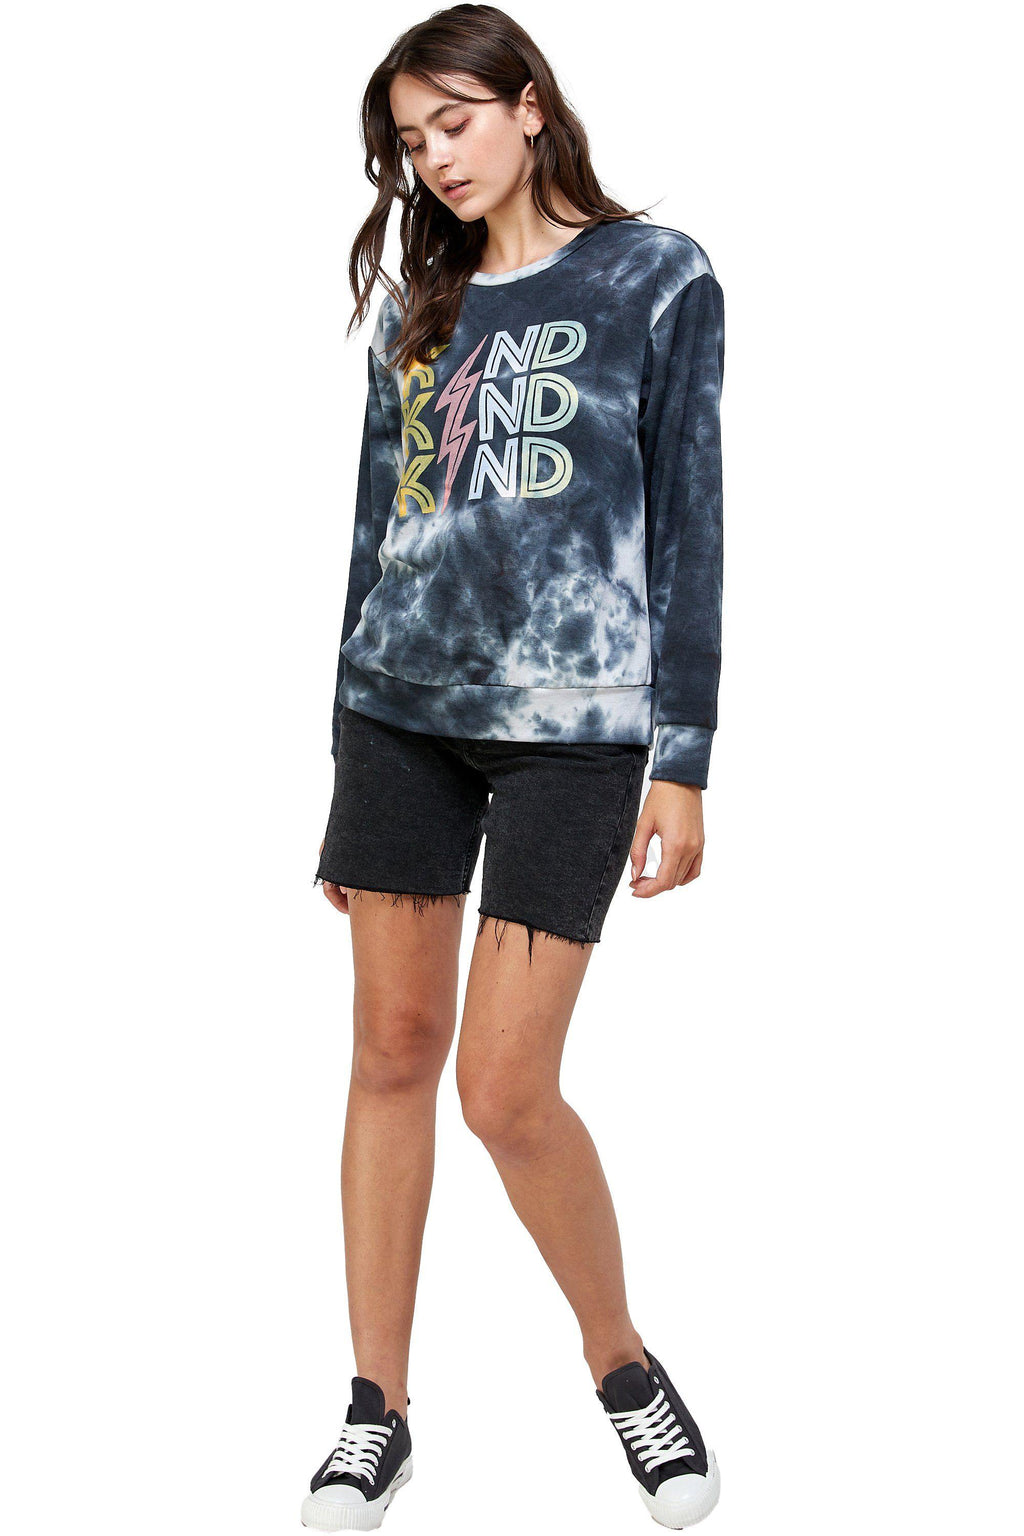 FRENCH TERRY TIE DYE SCREEN PRINTED SWEATSHIRTS